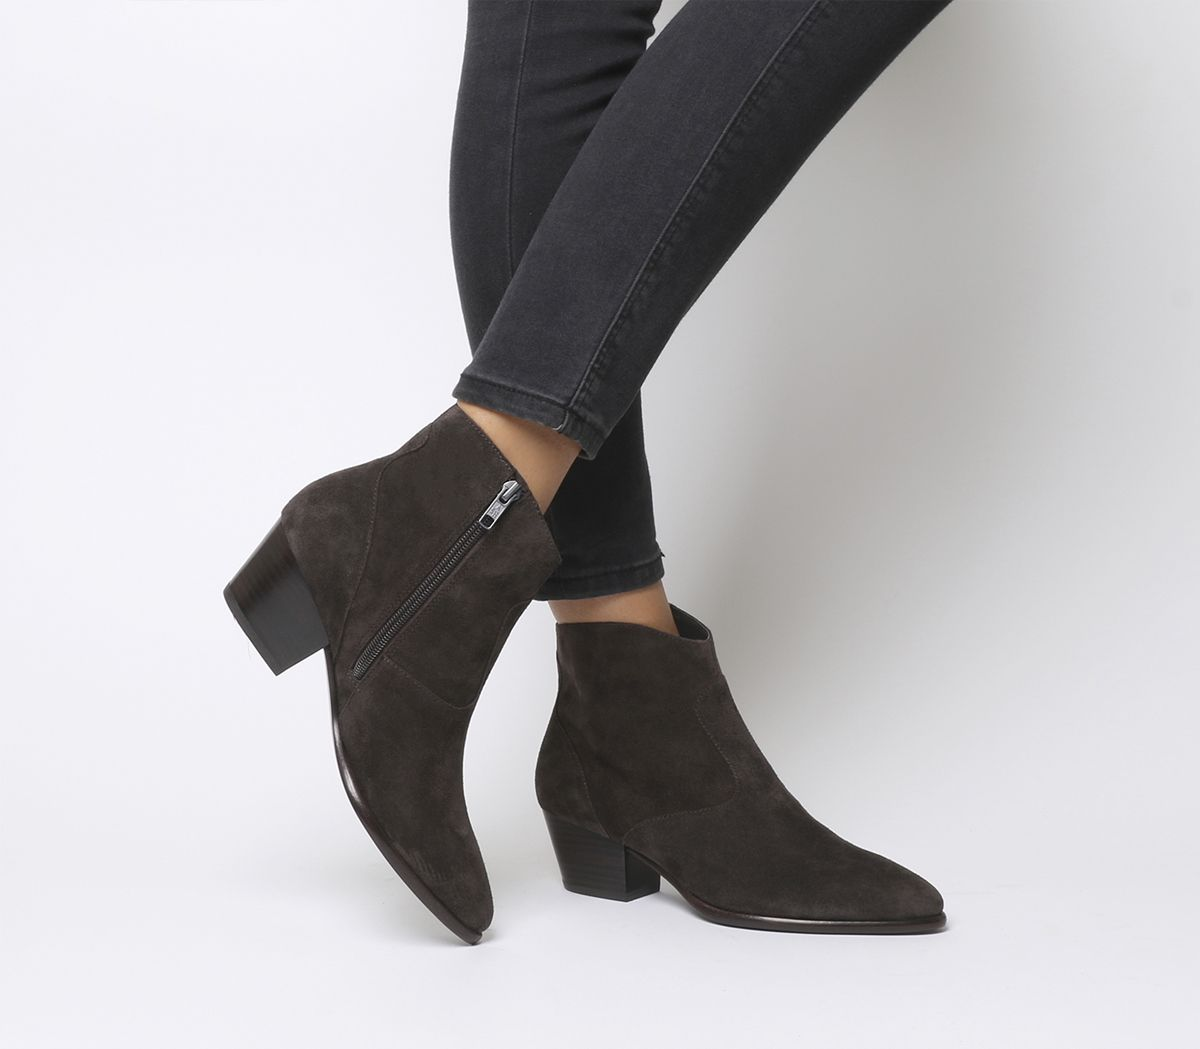 6979909a079 Ash Heidi Bis Ankle Boots Grey - Ankle Boots